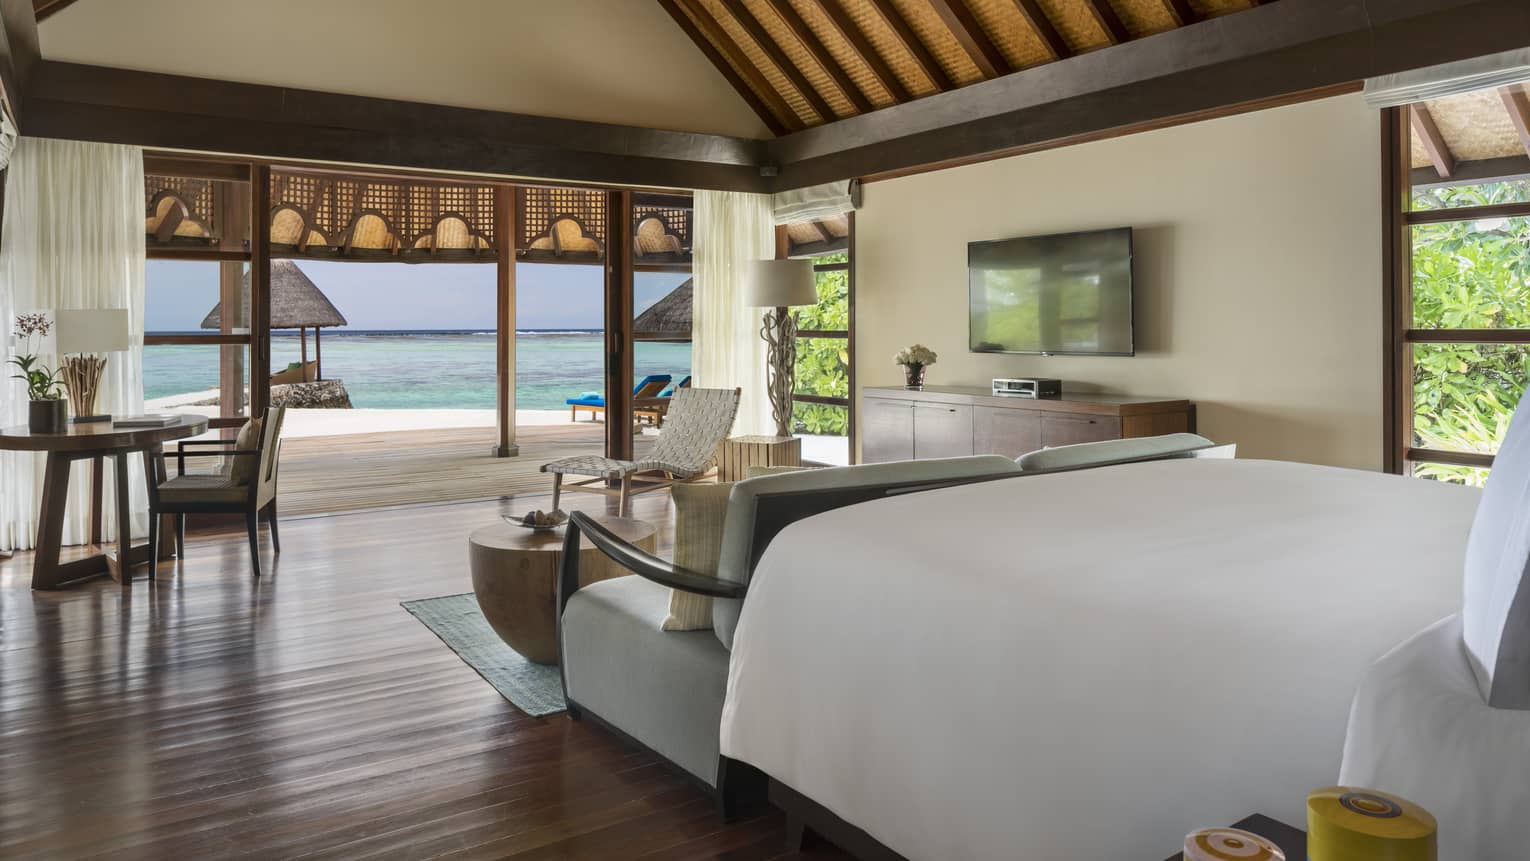 Oceanside bungalow room with wooden furniture and white bedding opening up to ocean